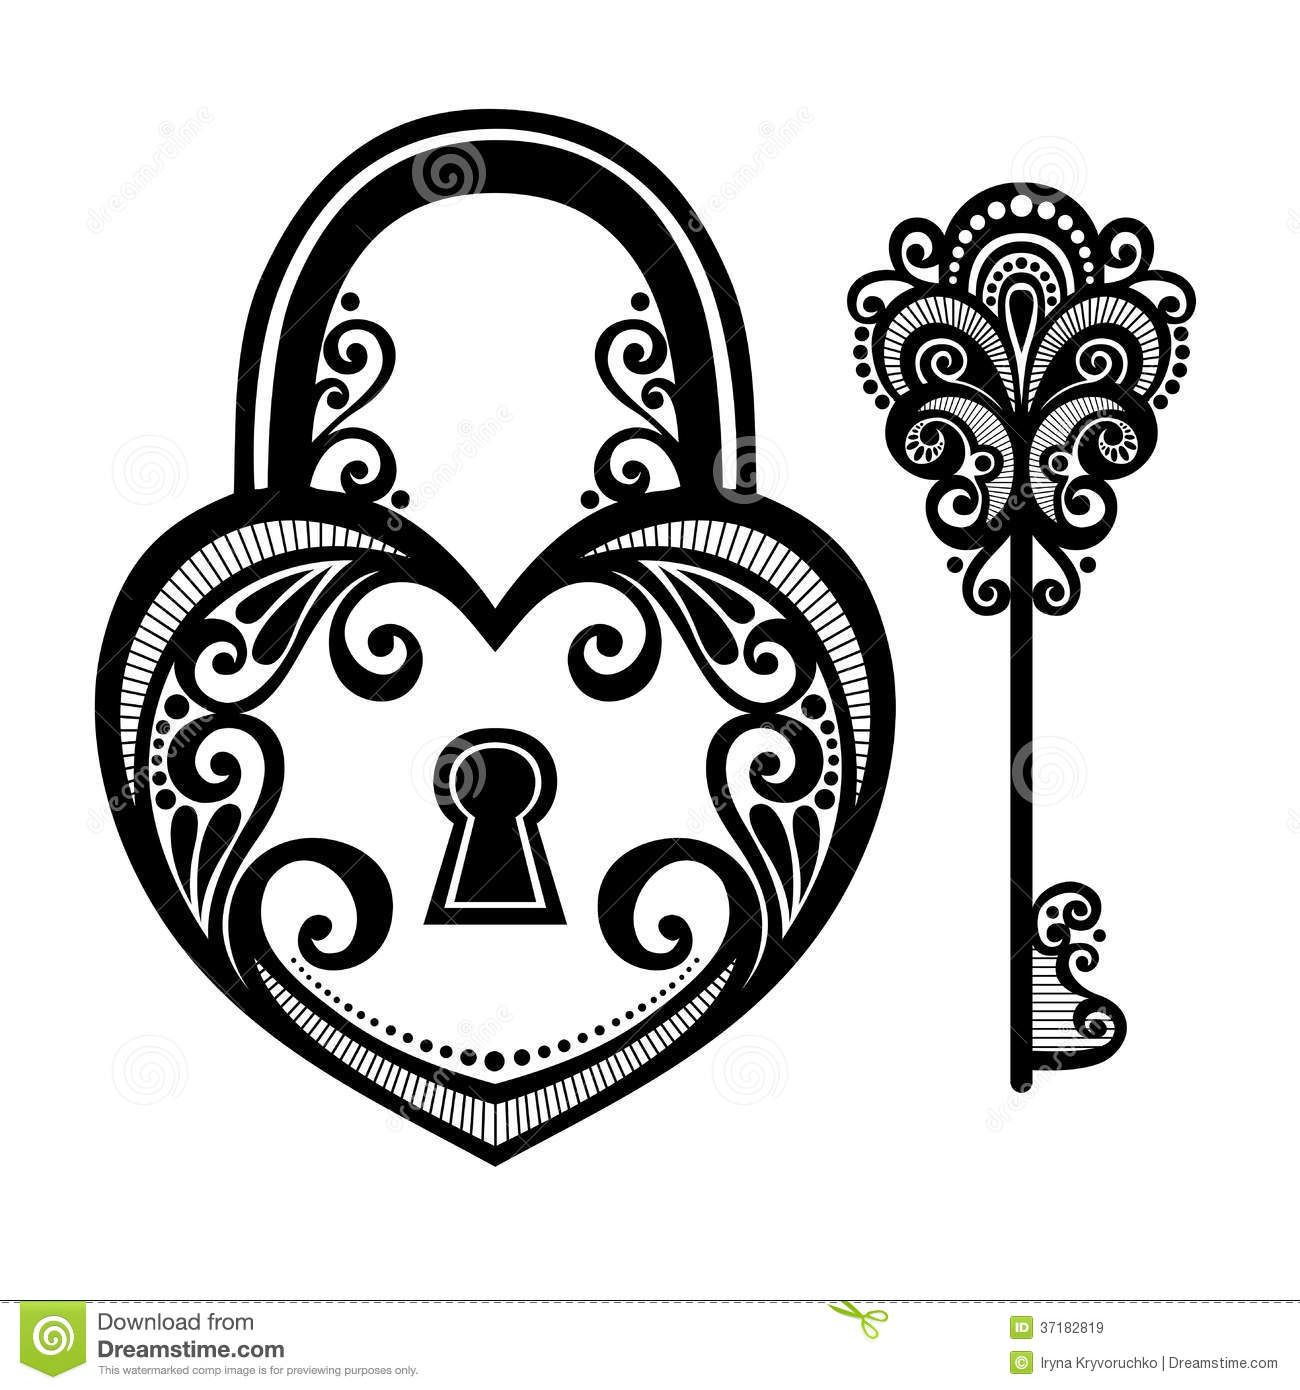 It's just an image of Fabulous Heart Lock And Key Drawing